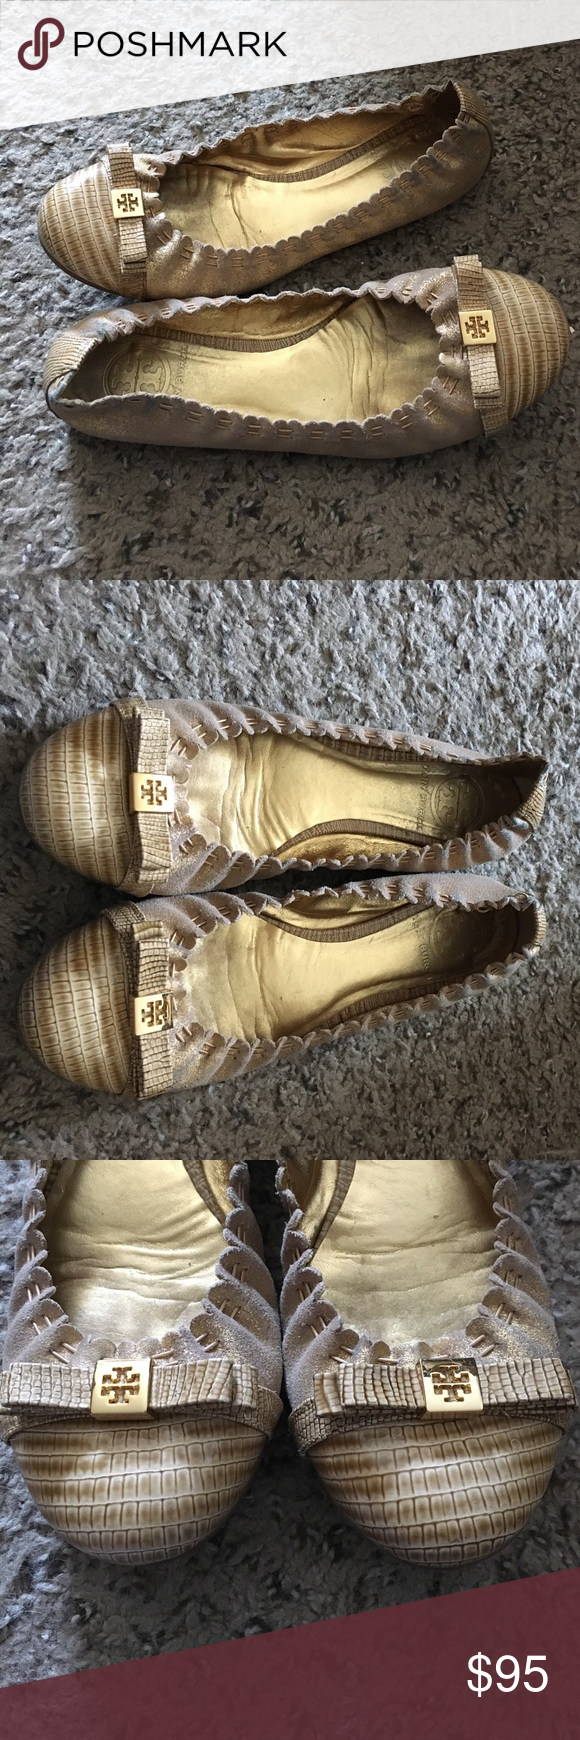 Tory Burch Gold Bow Reva Ballet Flats Gorgeous Tory Burch flats. Tan crocodile front with gold leather. Gold bow in front. Decent used condition. There is some wear on the backs as seen in pictures. Size: 6.5. Tory Burch Shoes Flats & Loafers